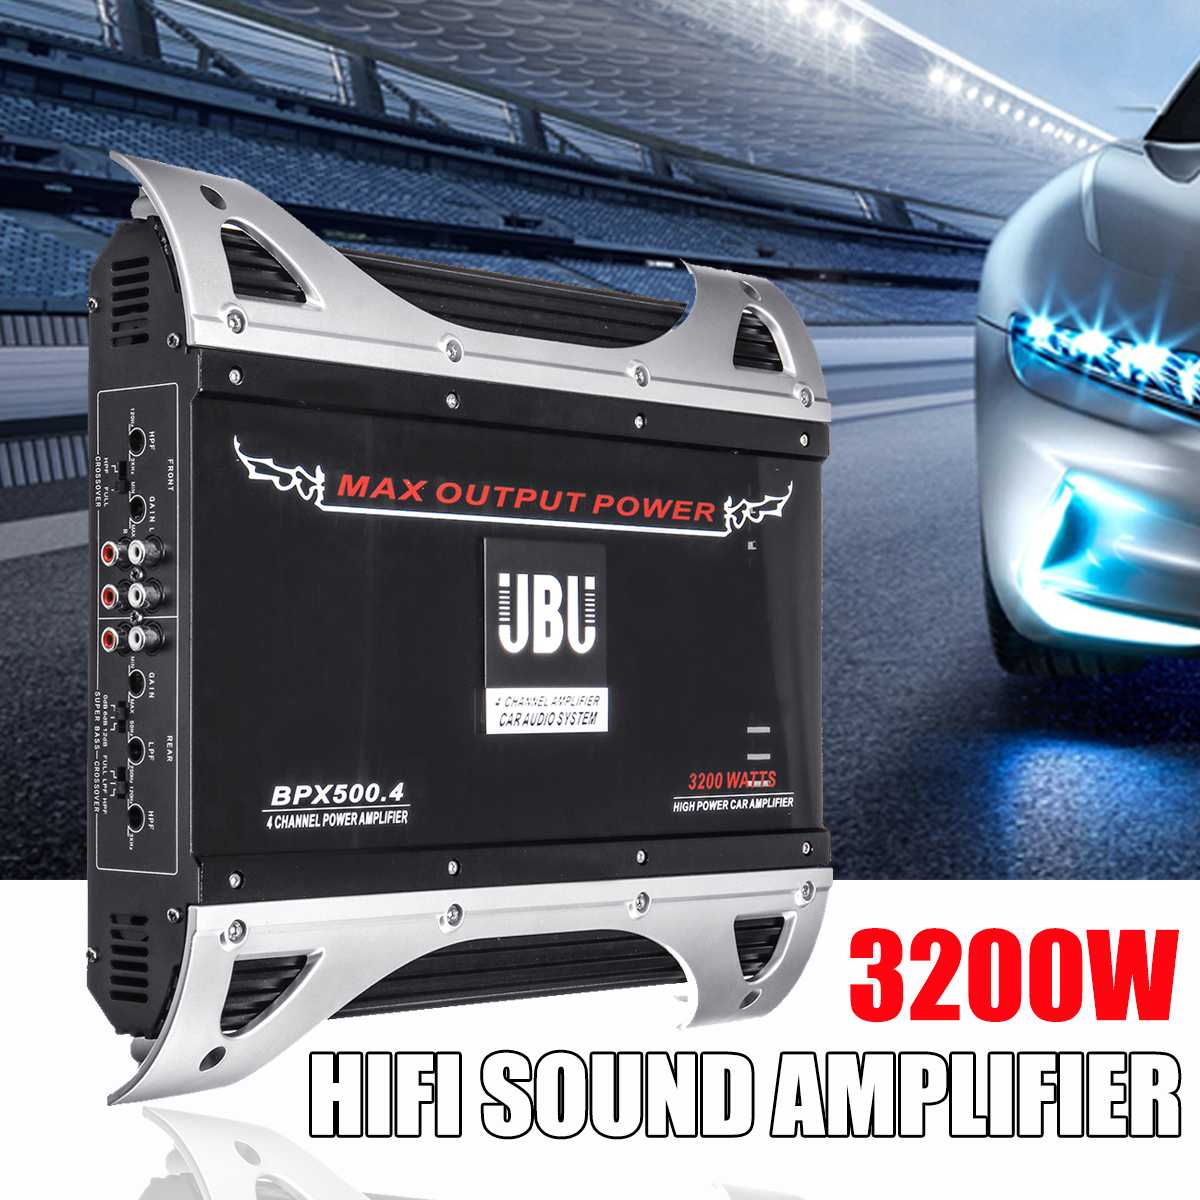 3200W 12V 4 Channel Car Amplifier Audio Stereo Bass Speaker 4 Way High Power Vehicle Car Audio Power Amplifier Subwoofer